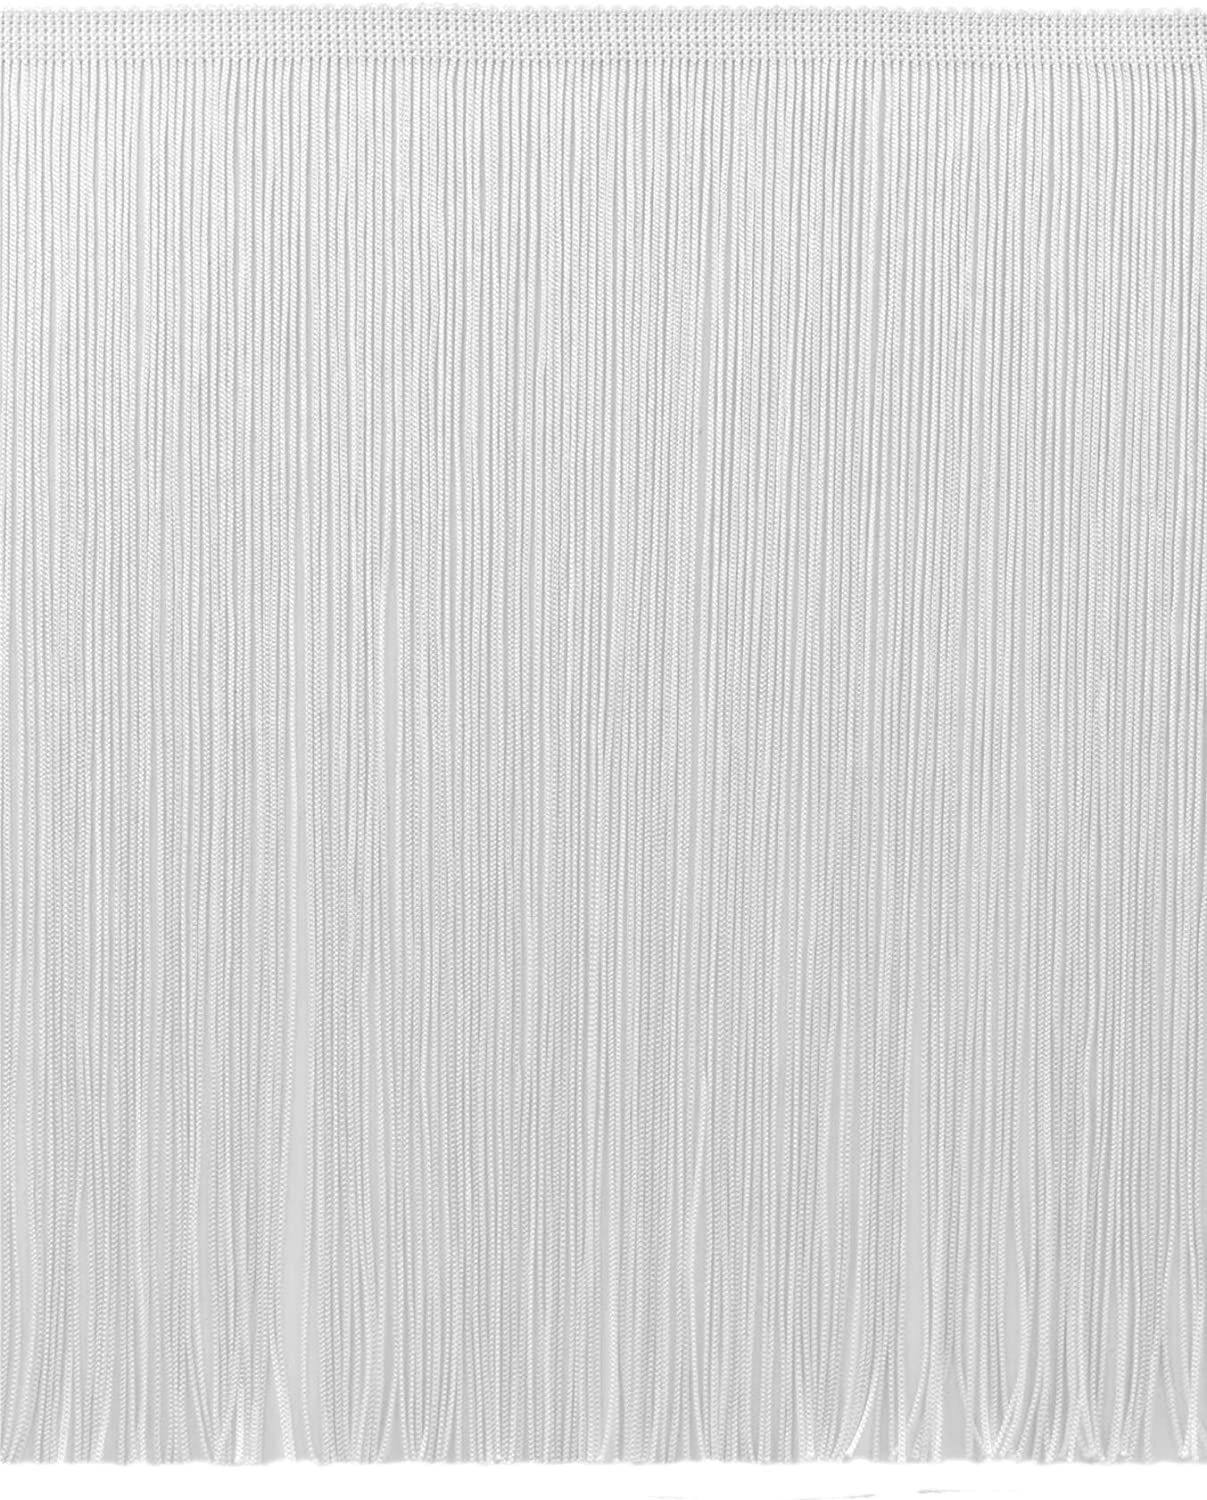 A1 Style# CF12 Color: White Sold by The Yard D/ÉCOPRO 12 Inch Chainette Fringe Trim